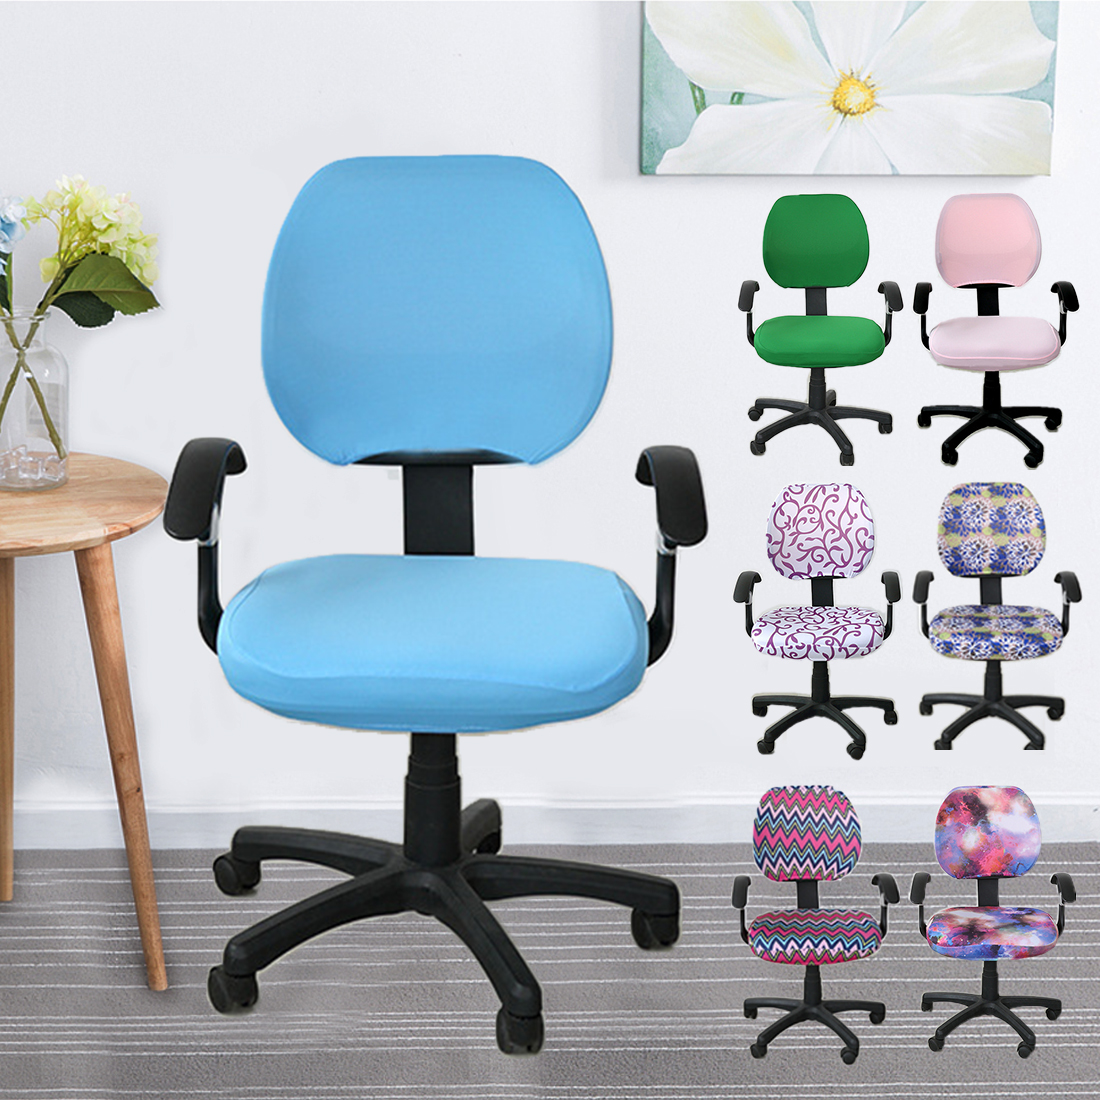 Free Shipping Stretch Chair Covers Spandex For font b Gaming b font Chair font b Computer